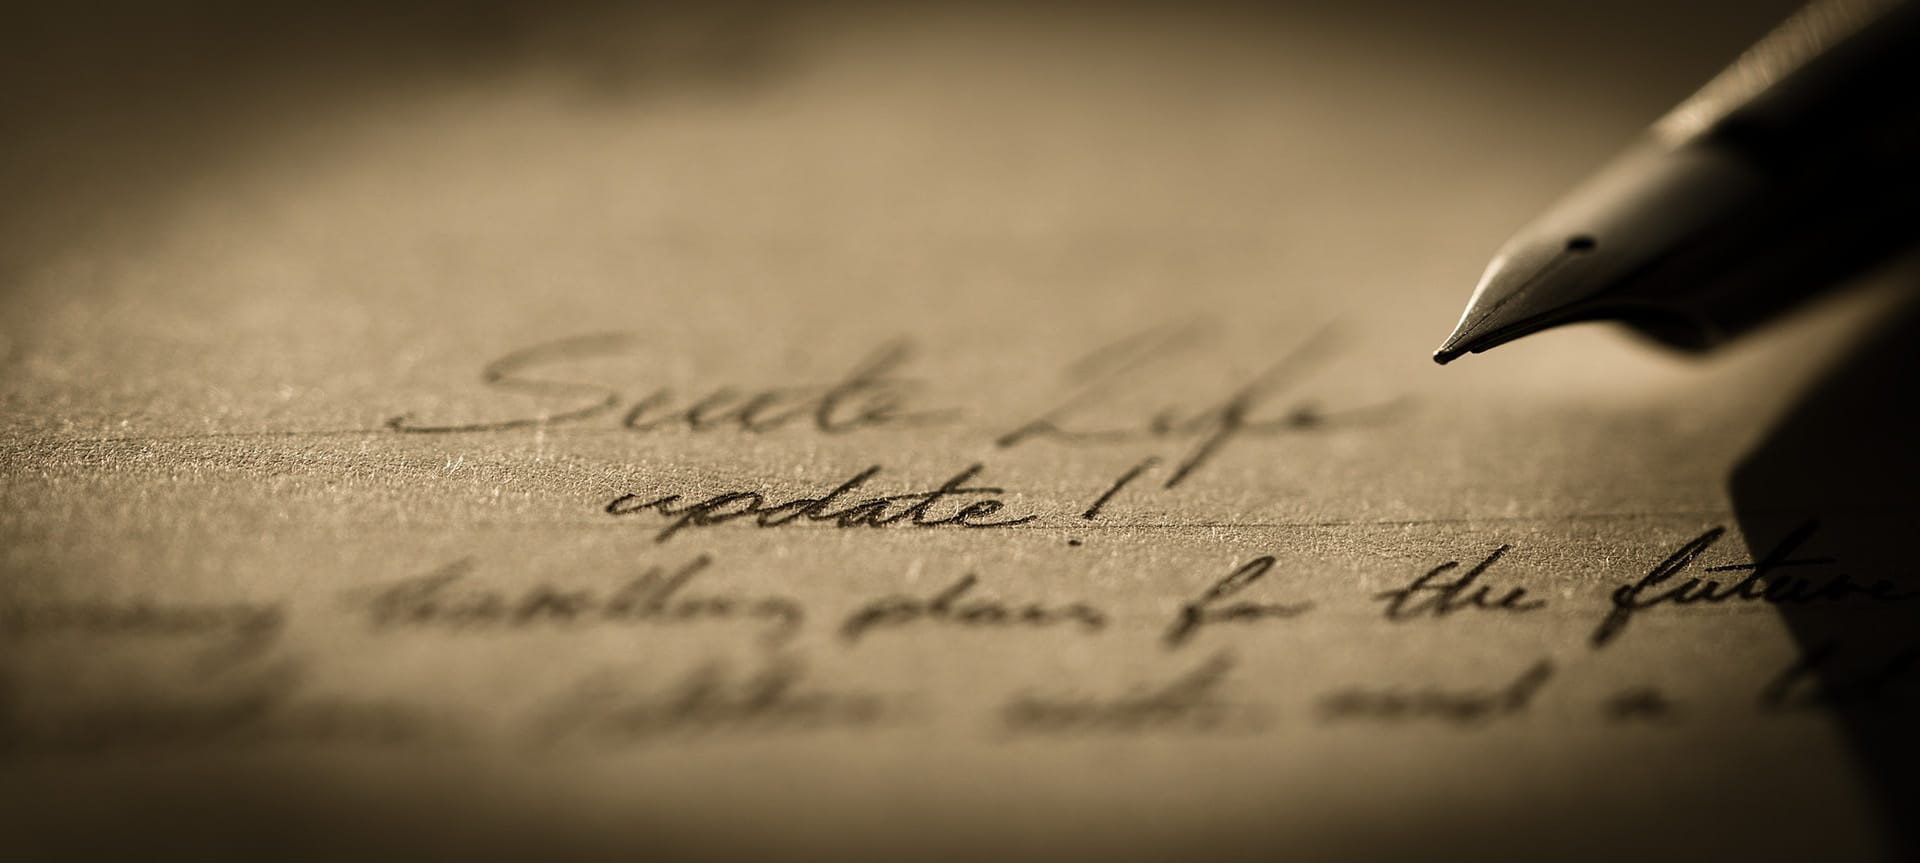 macro photograph of pen and paper